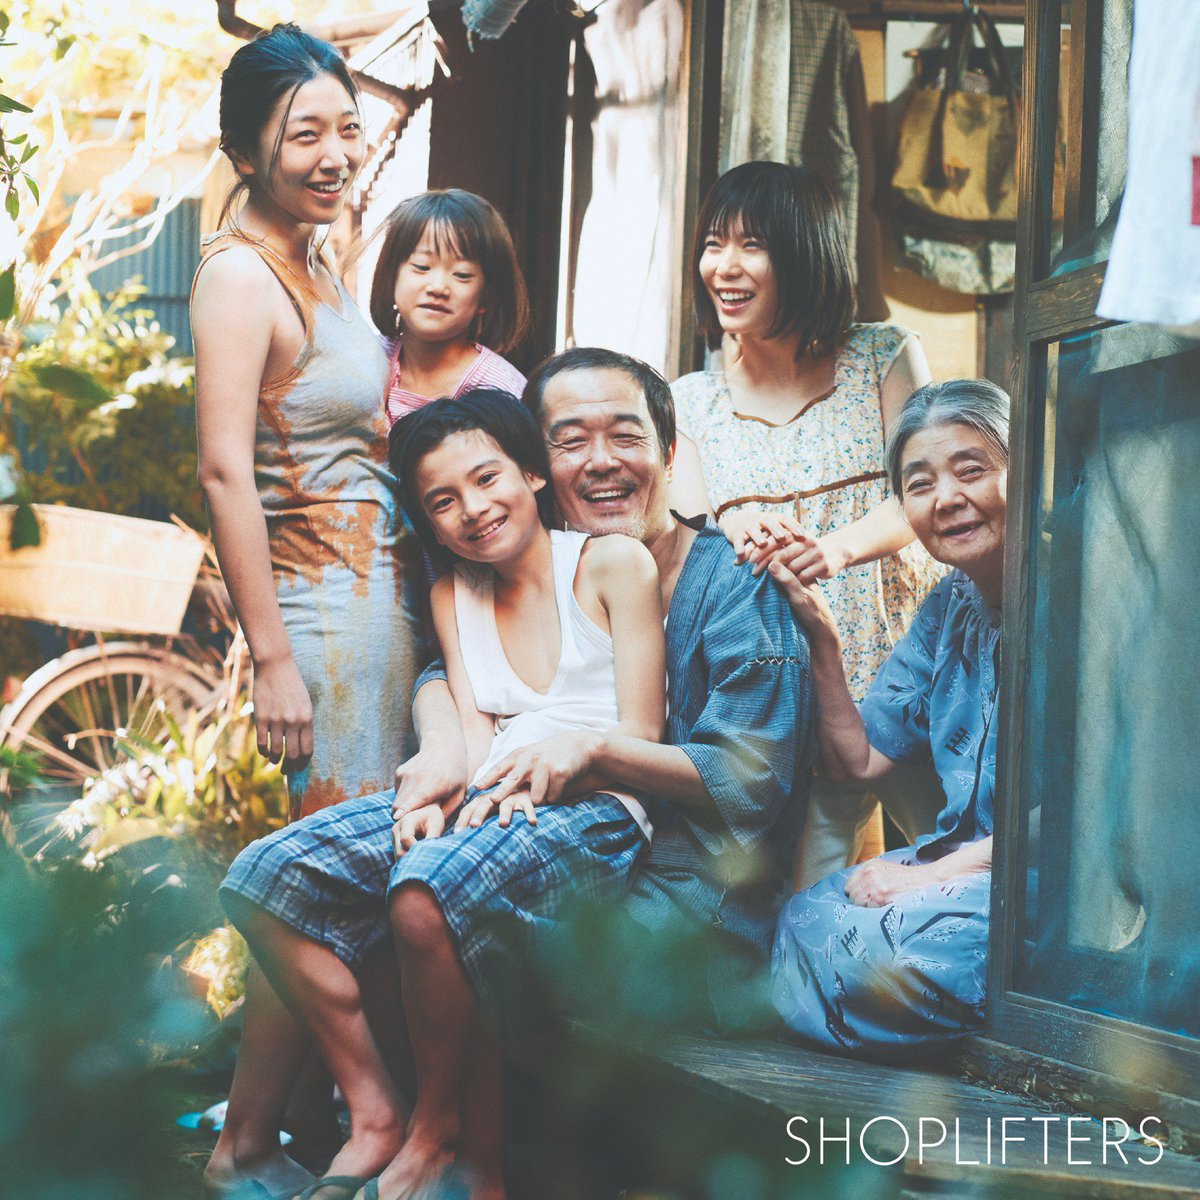 This #ValentinesDay watch #Shoplifters with the people you love. Now available on digital and DVD. Watch today: http://bit.ly/ShopliftersWatchAtHome …